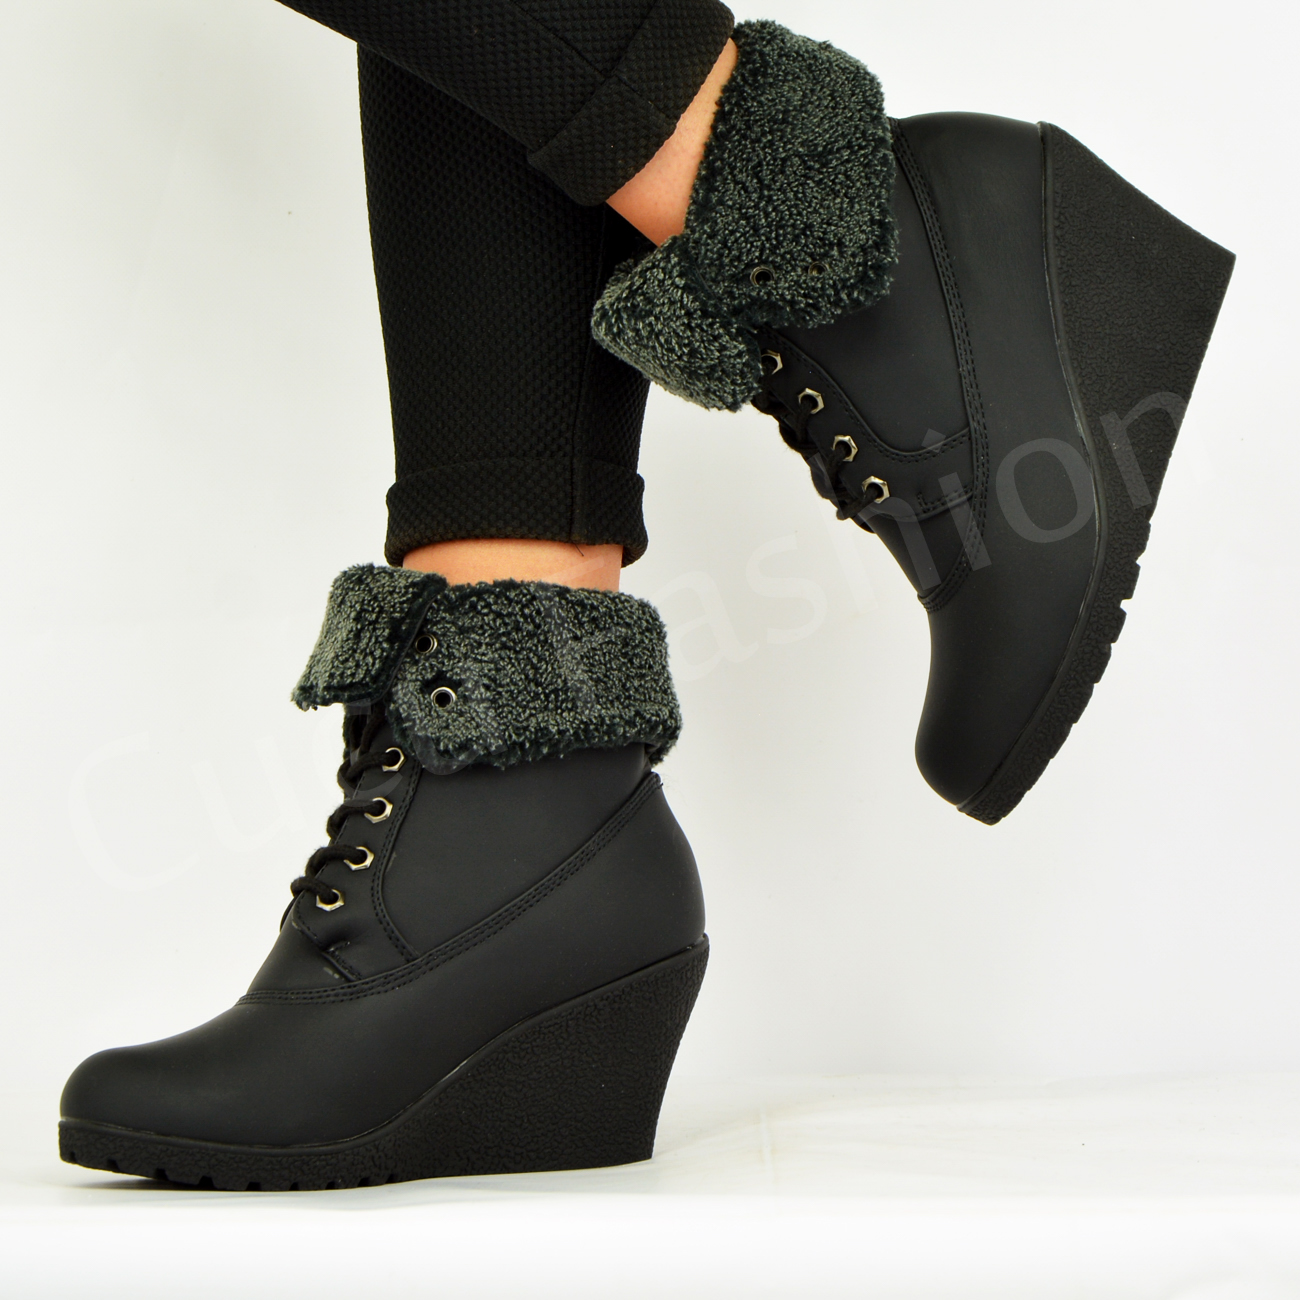 New Womens Fur Lined Ankle Boots Ladies Wedge Platform